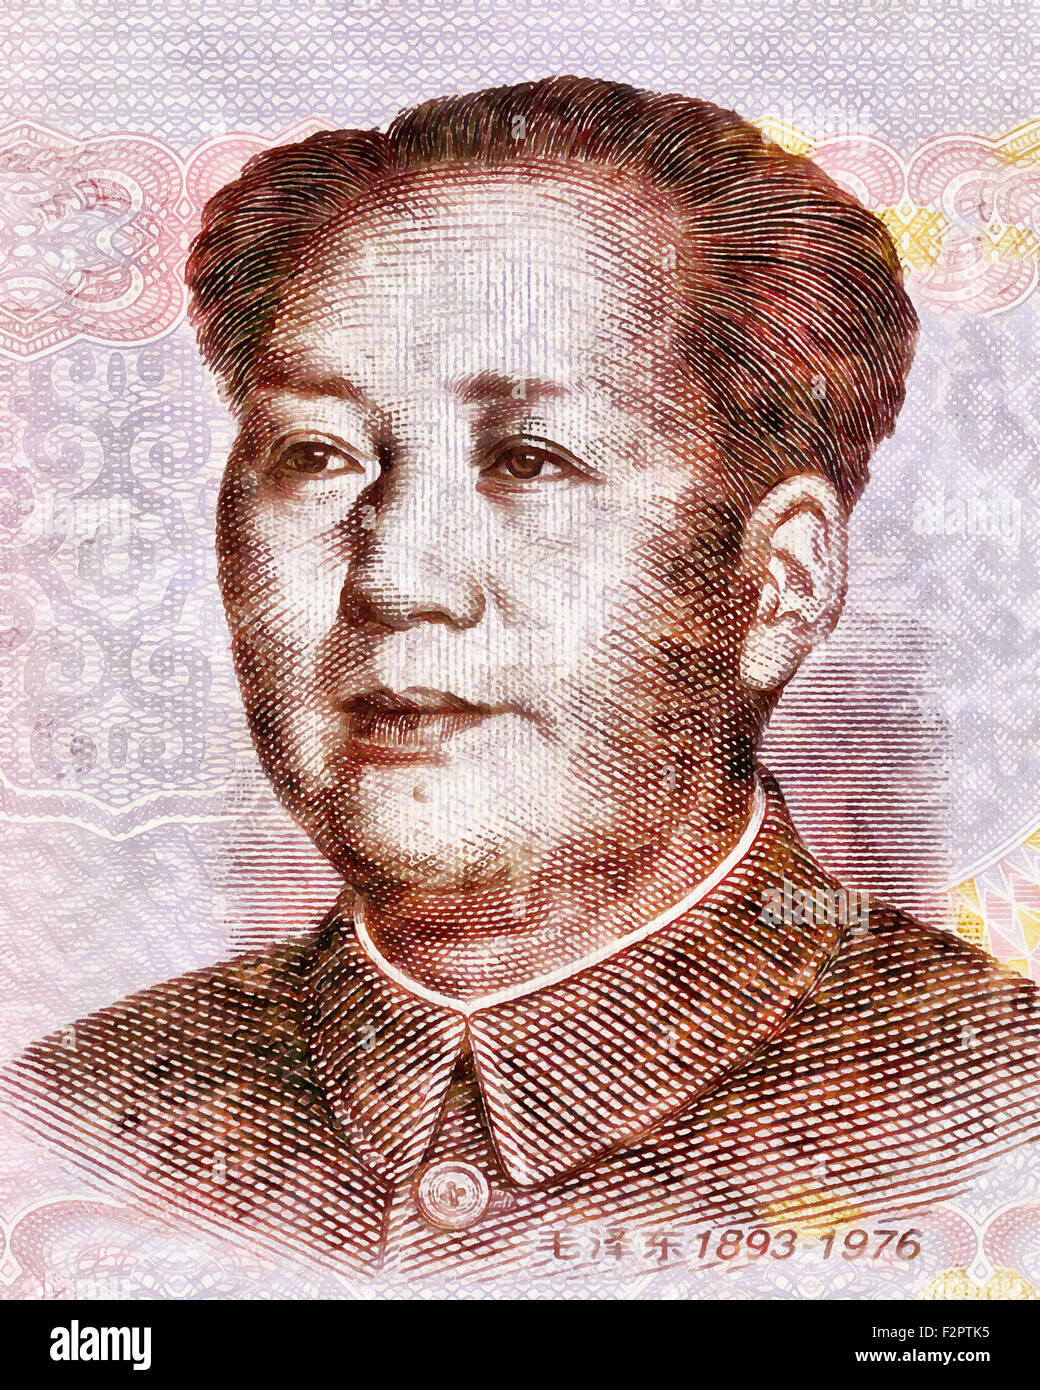 the political rule of mao zedong in china This is a chinese name the family name is mao mao zedong, also transliterated as mao tse-tung listen (help  nfo ) , and commonly referred to as chairman mao.